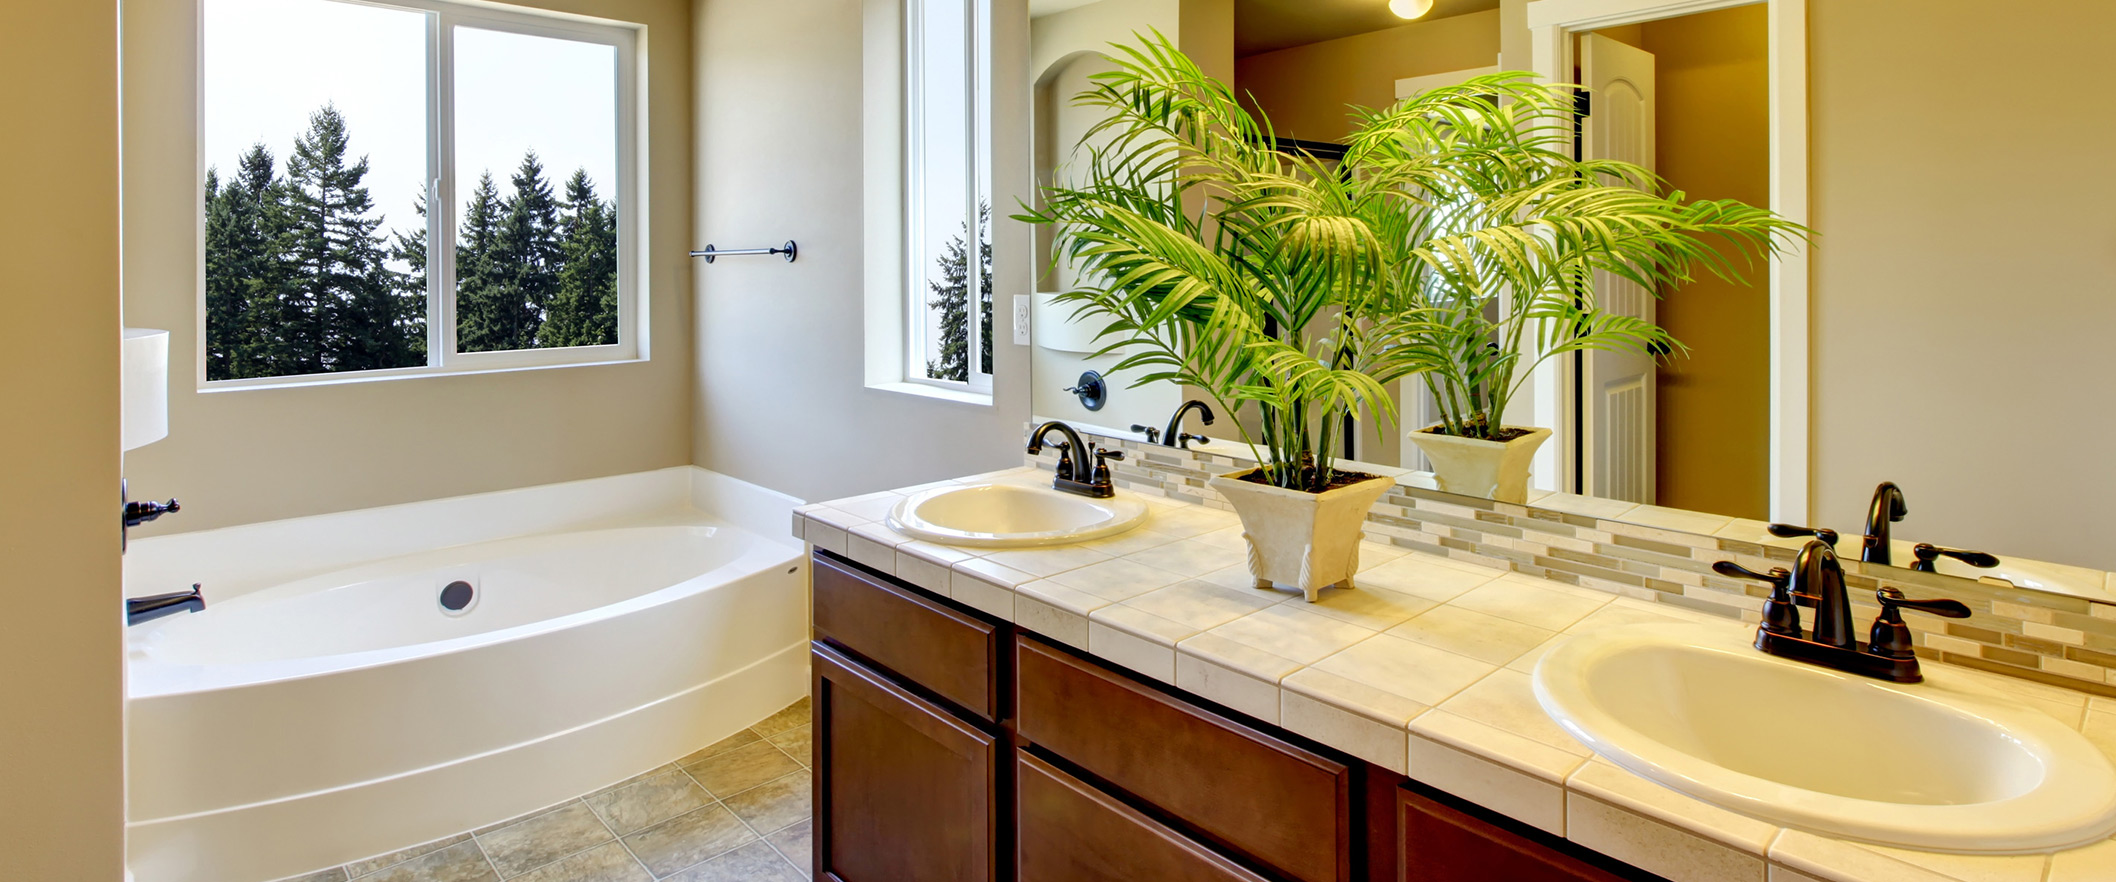 Custom Home Building Remodeling Services Lafayette La Drenko Contractors Llc